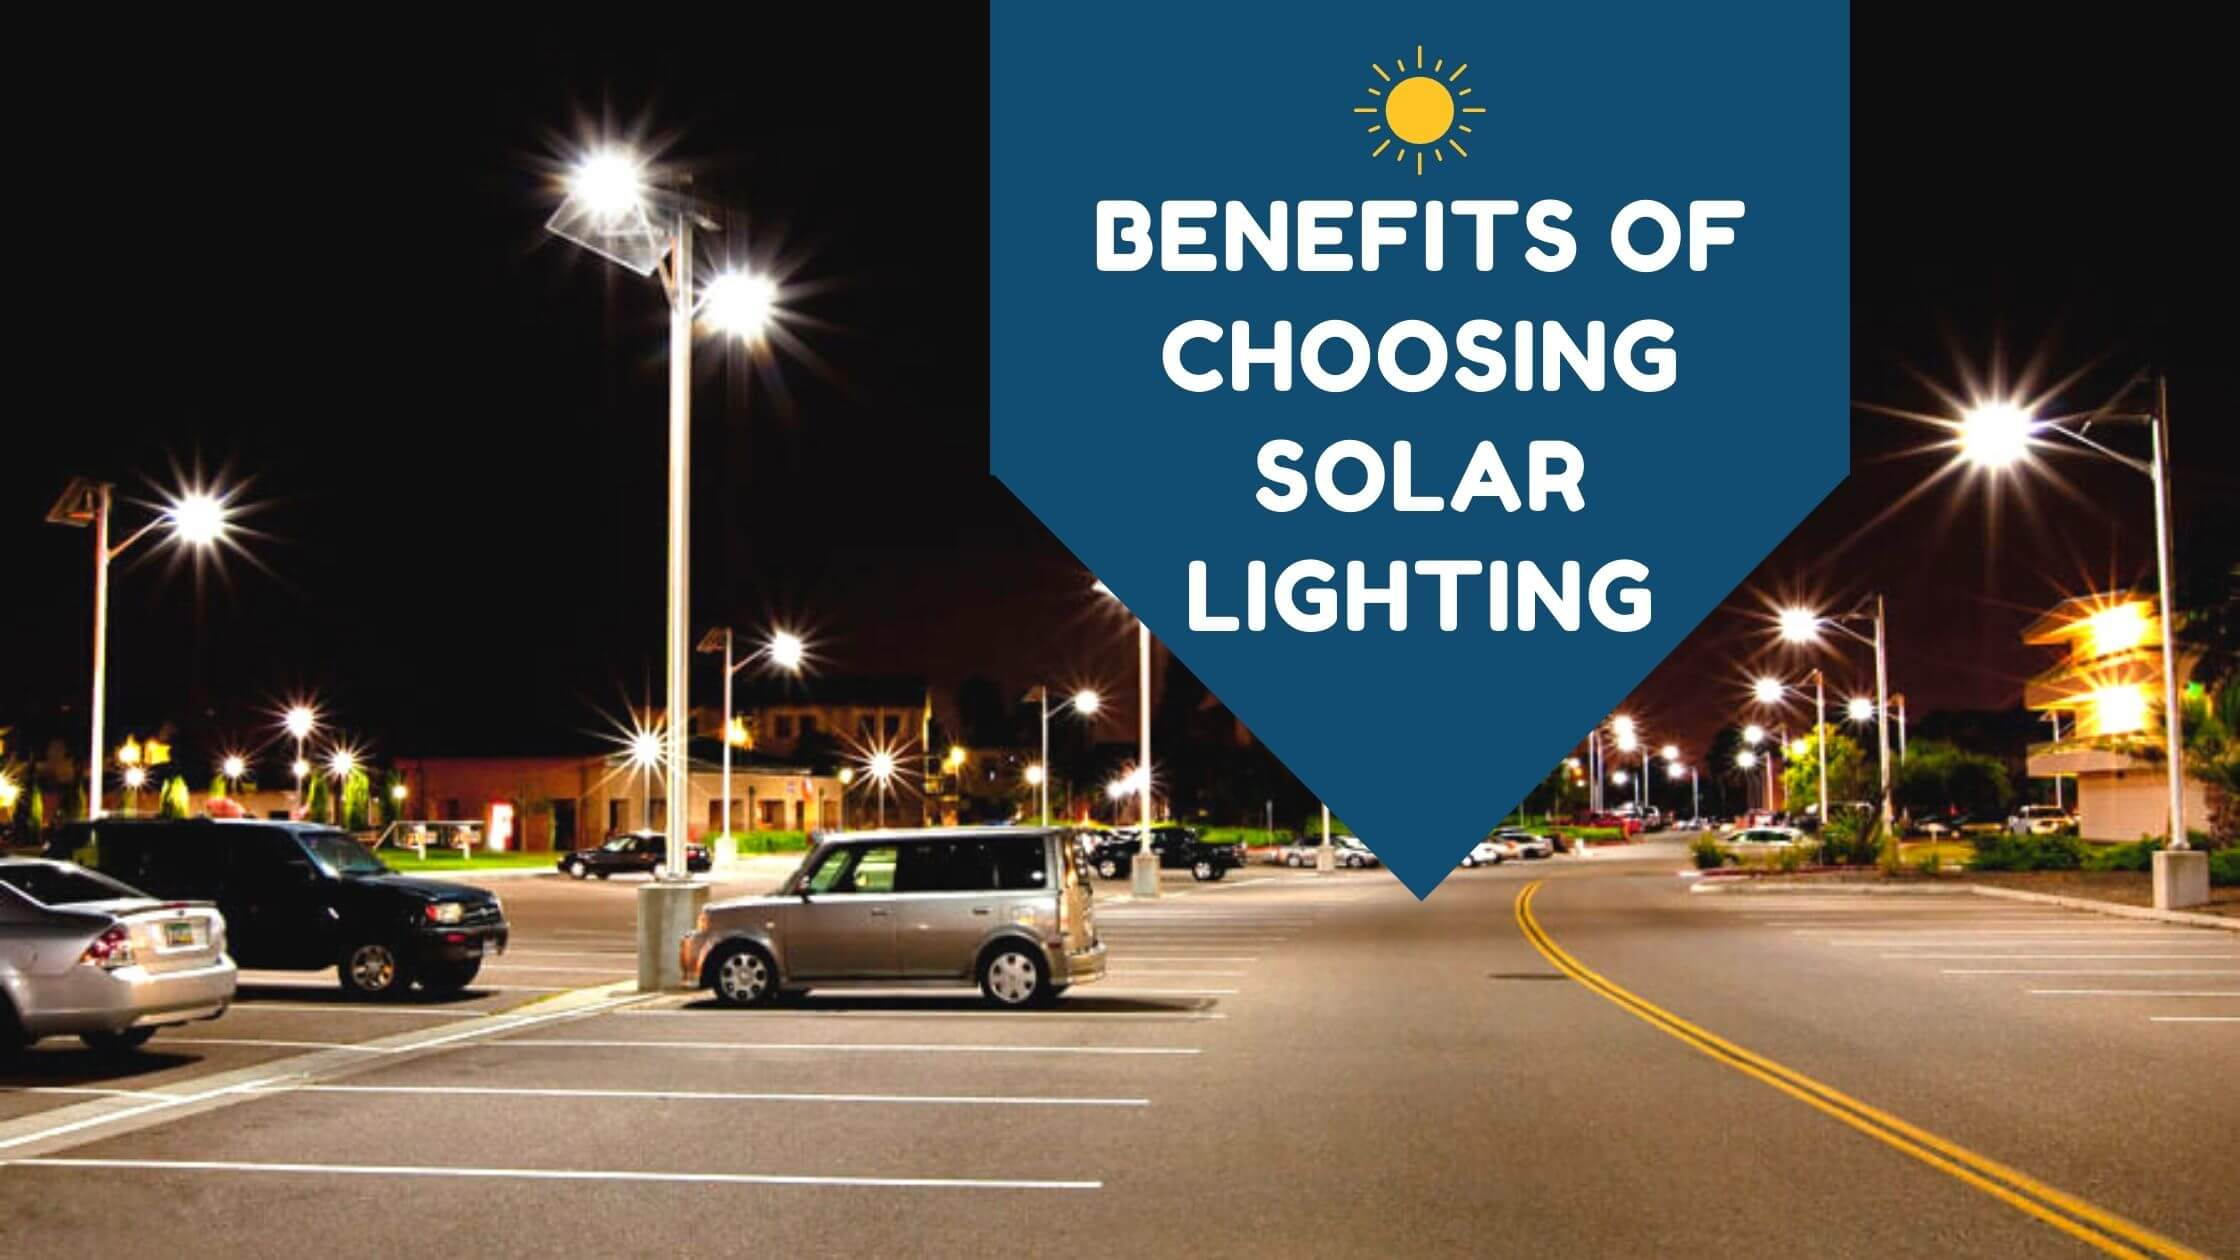 Benefits of Choosing Solar Lighting